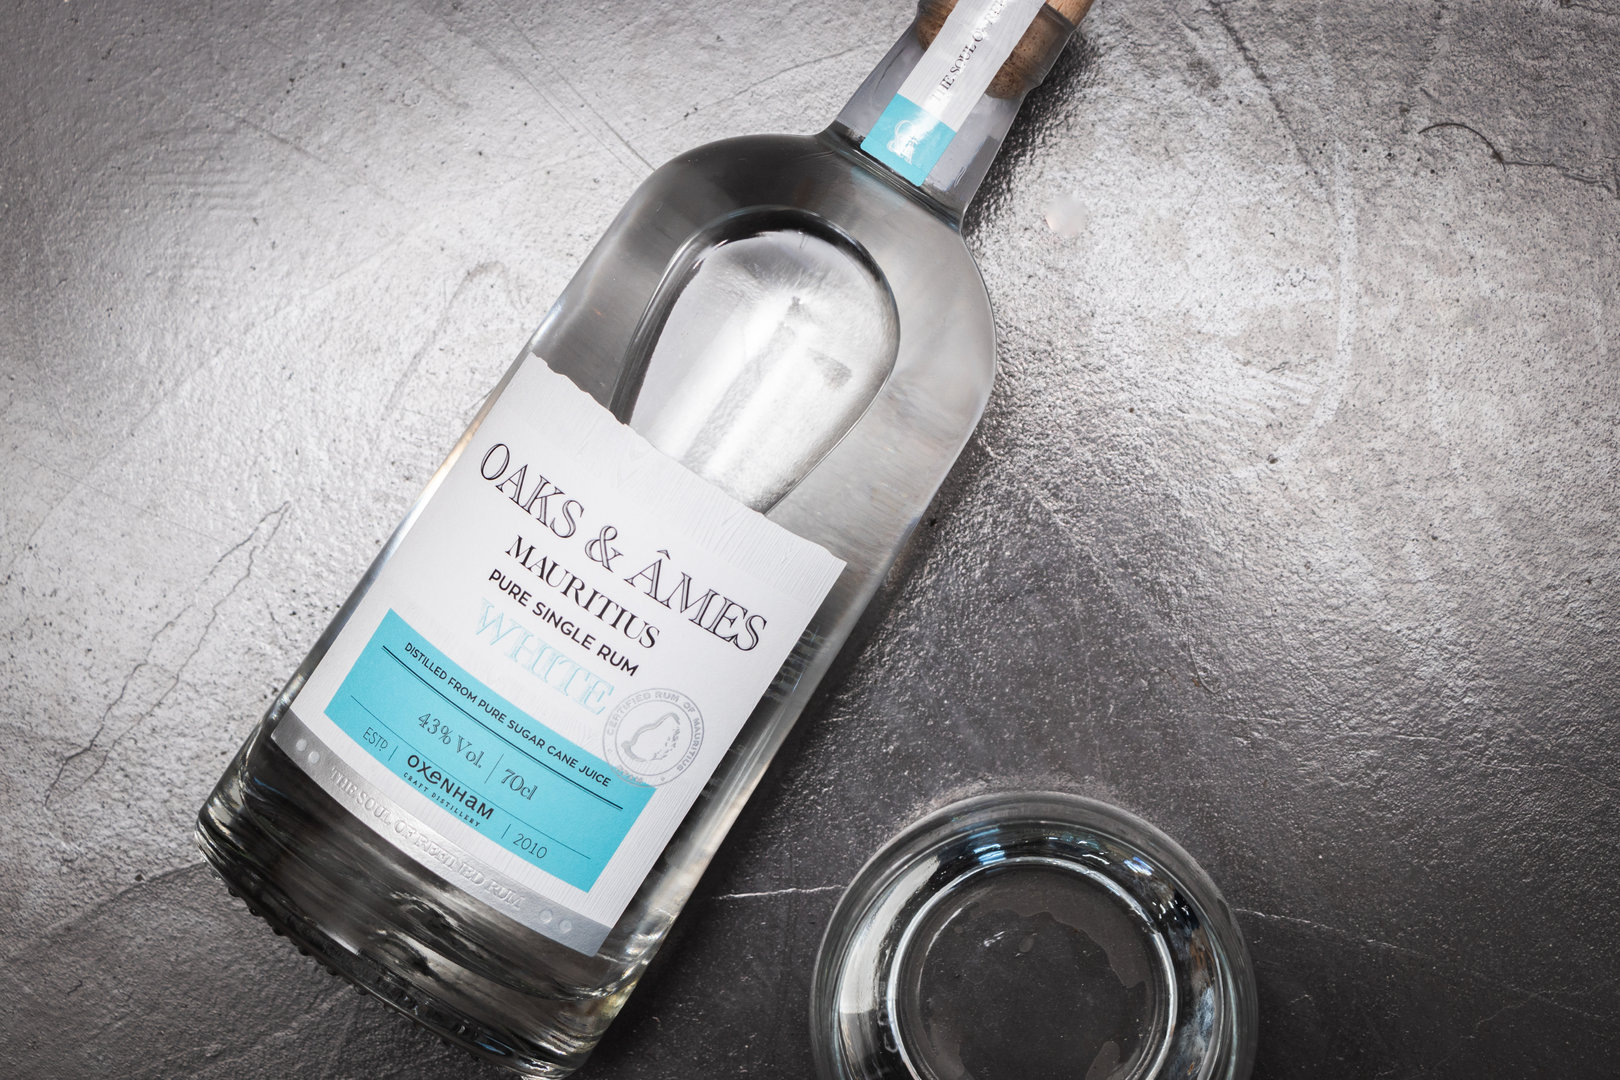 Oaks & Ames White Rum